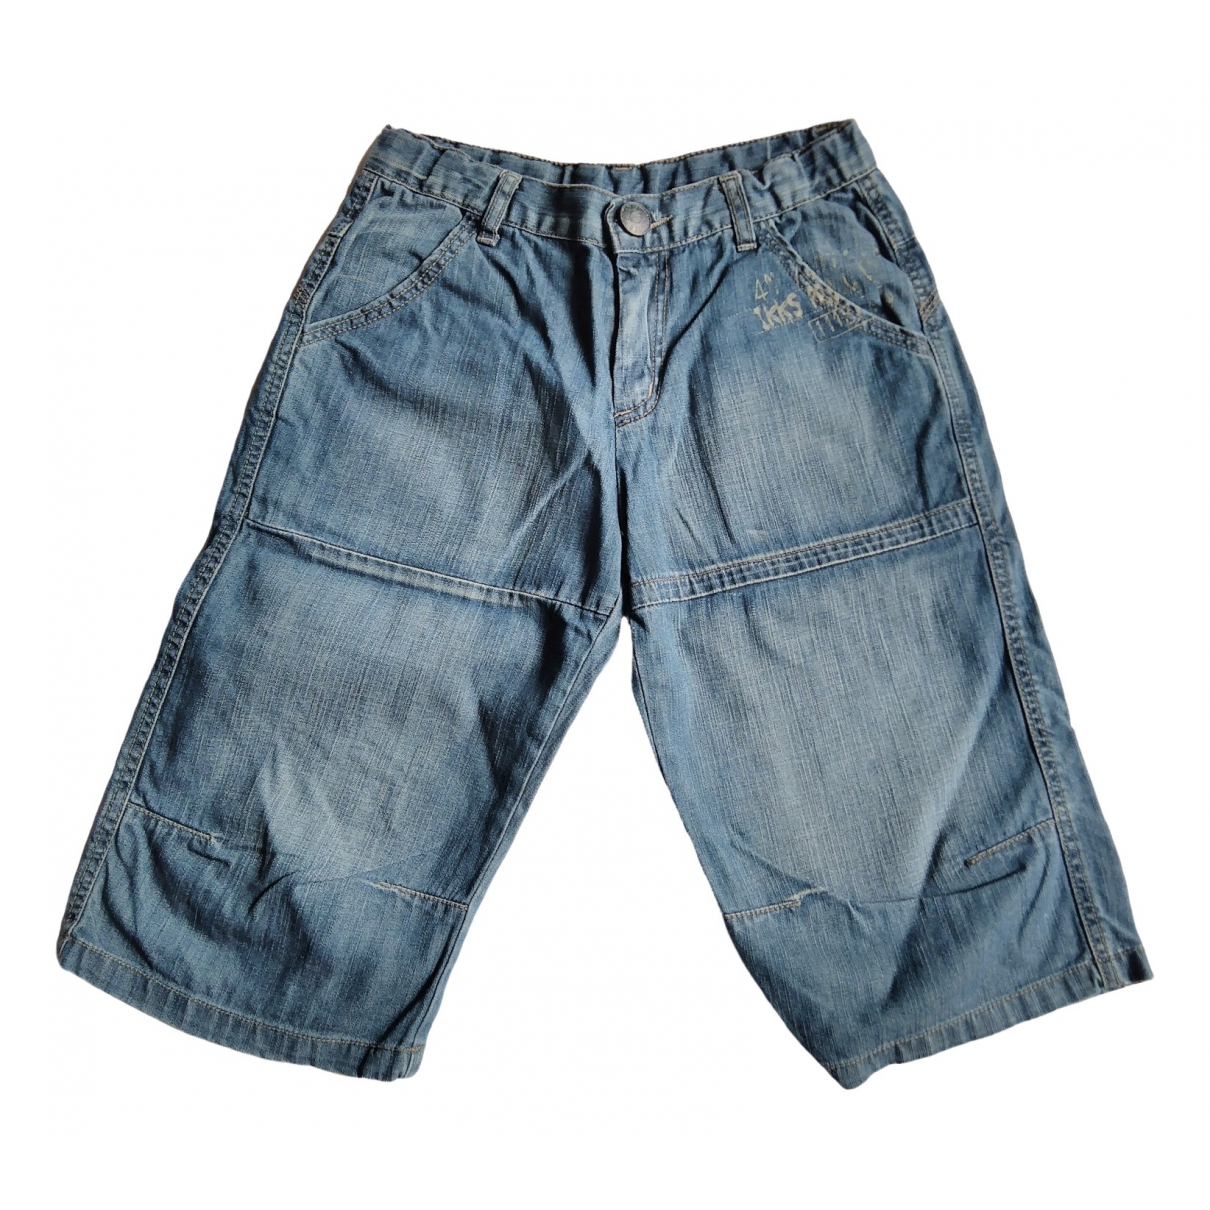 Ikks \N Shorts in  Blau Denim - Jeans